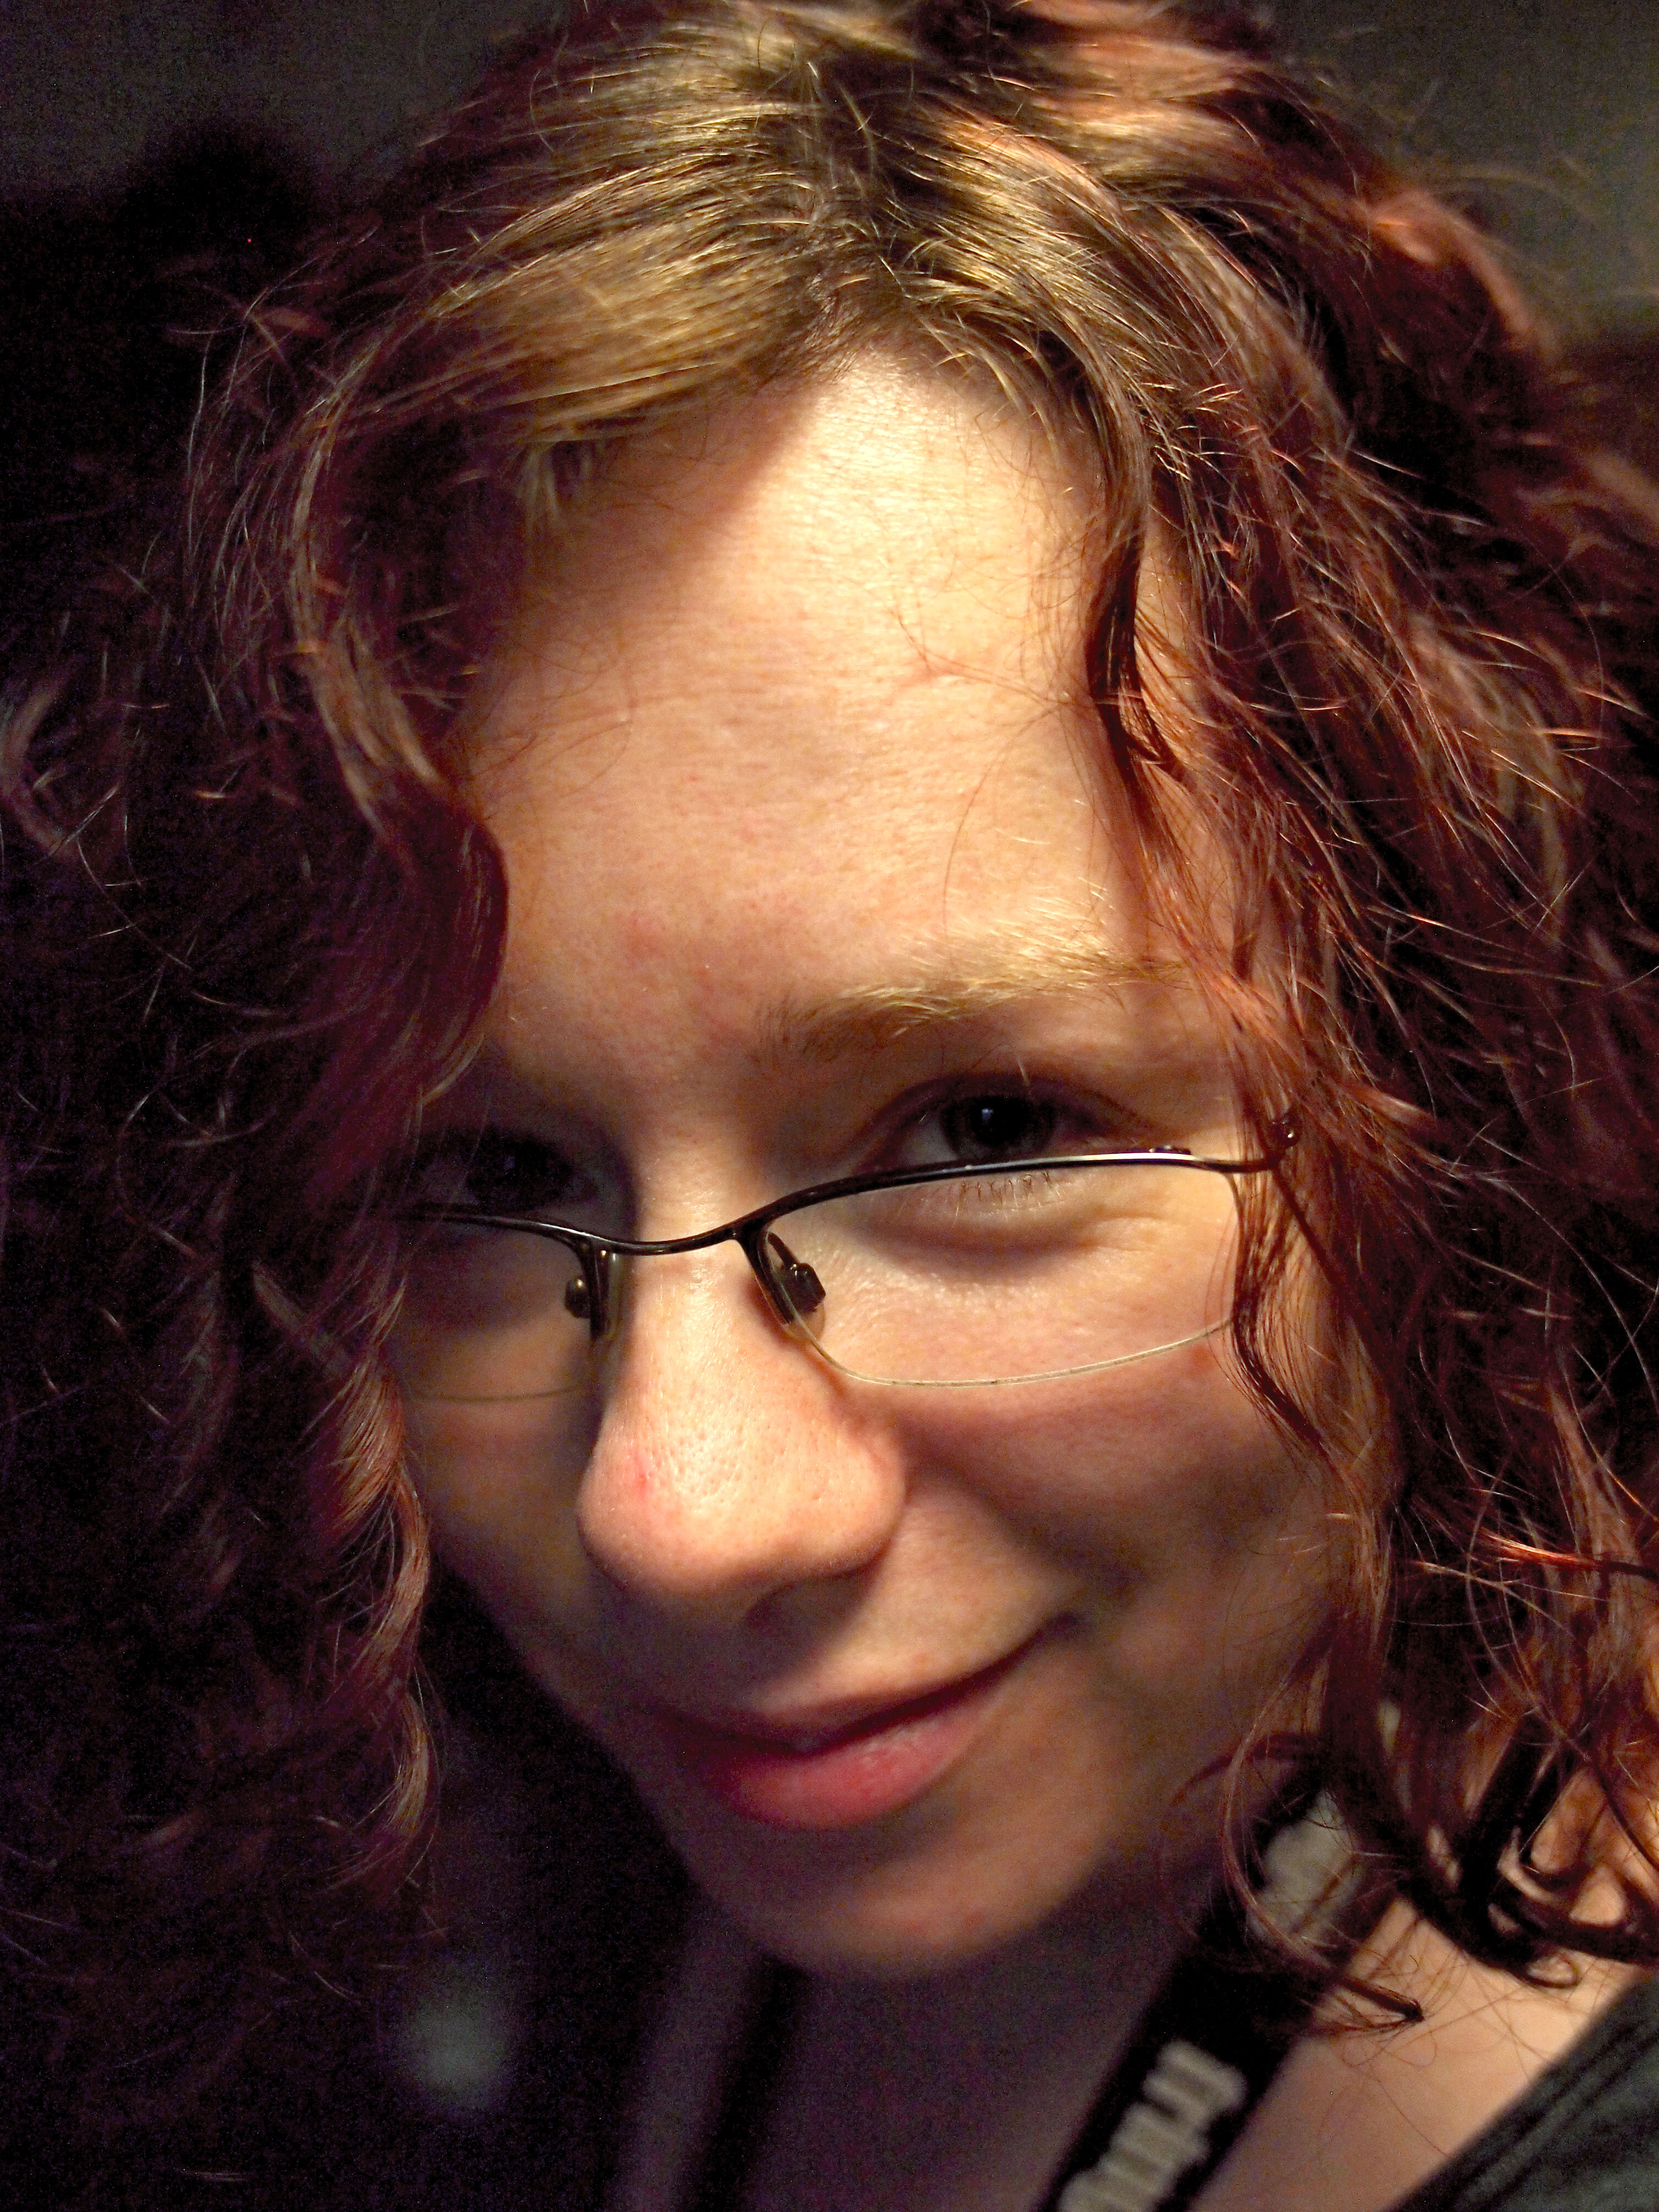 A close-up picture of me at 29: chin-length curly hair, looking at the camera.